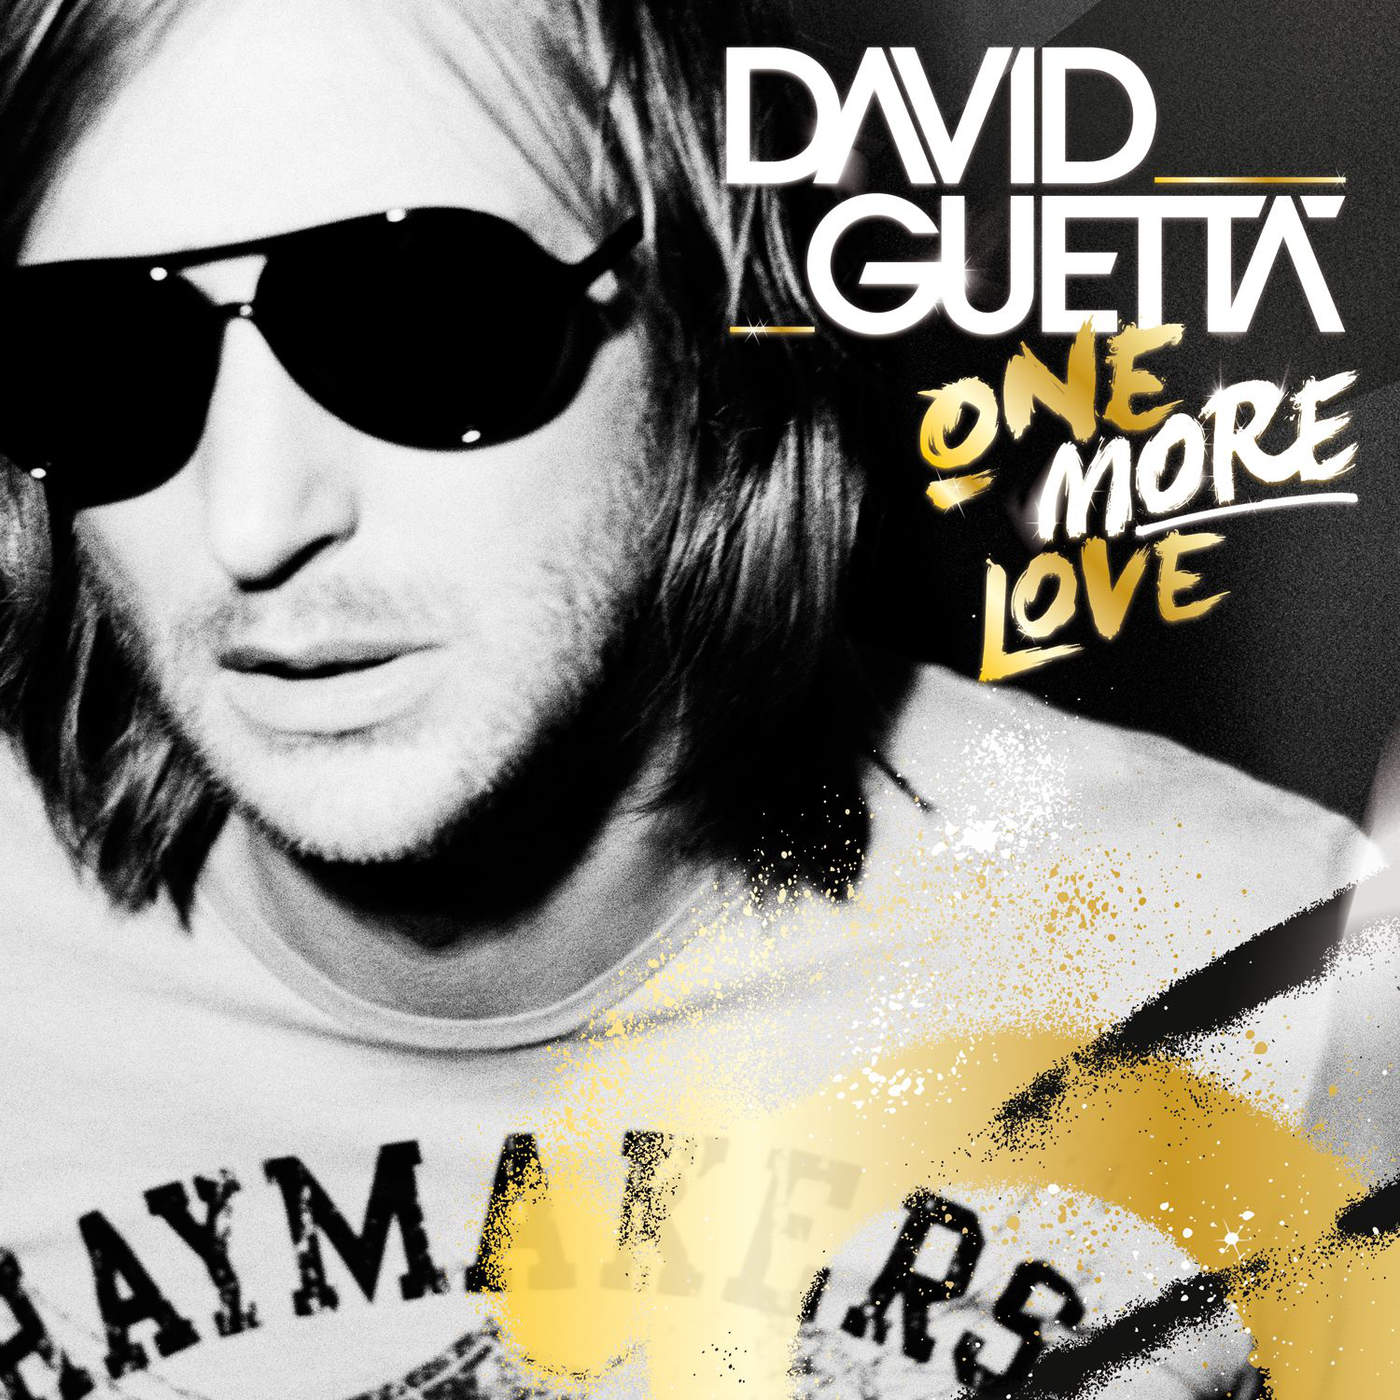 David Guetta - One More Love (Deluxe Version) Cover